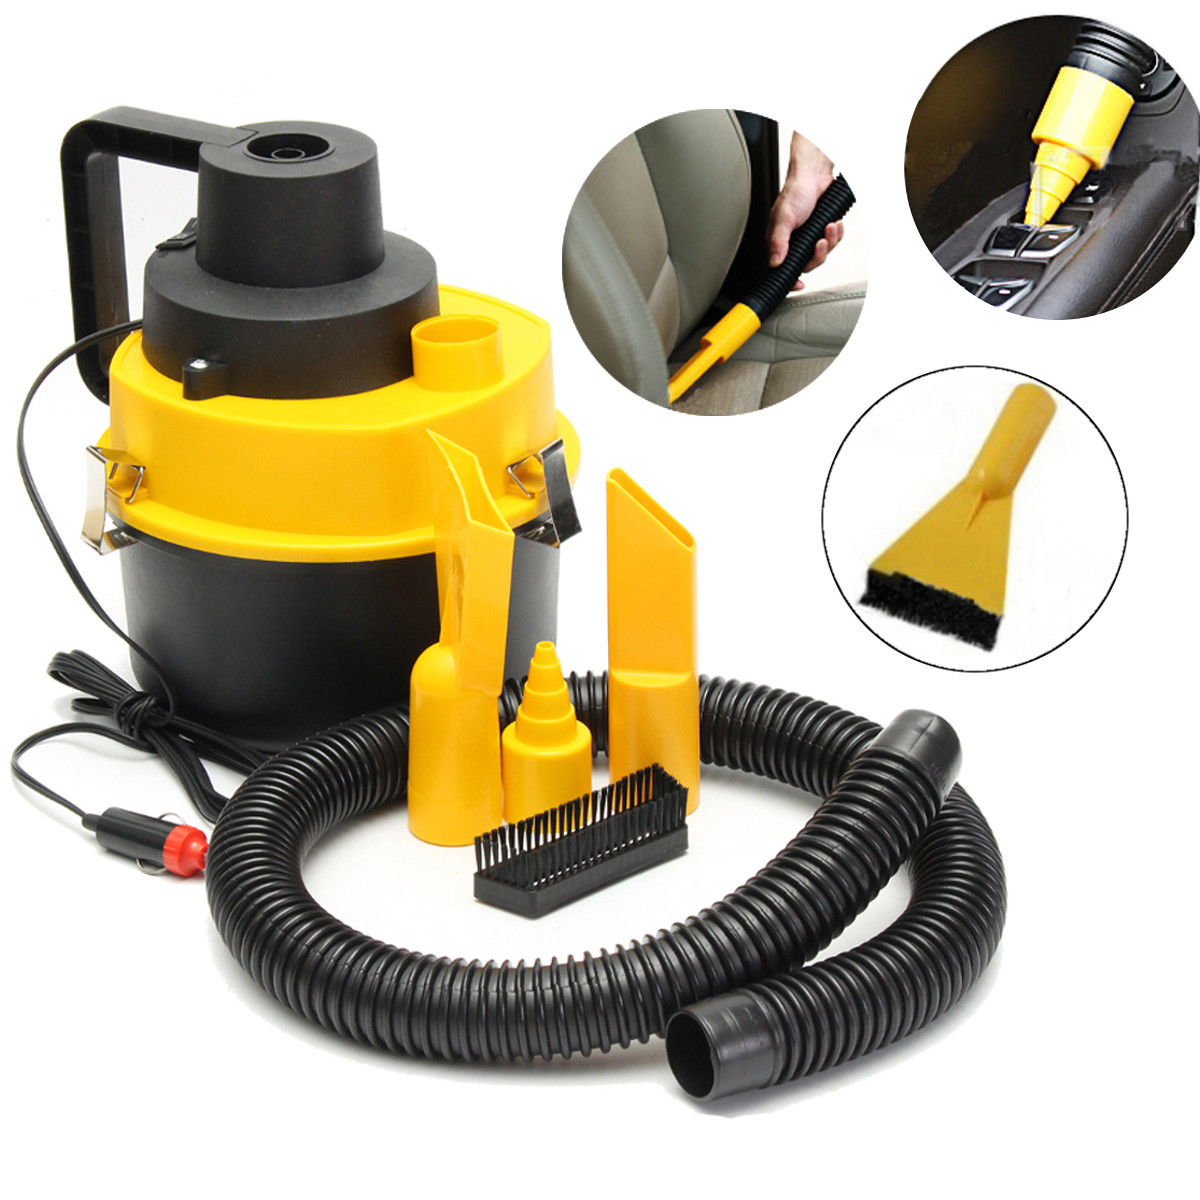 Sex with wet dry vac